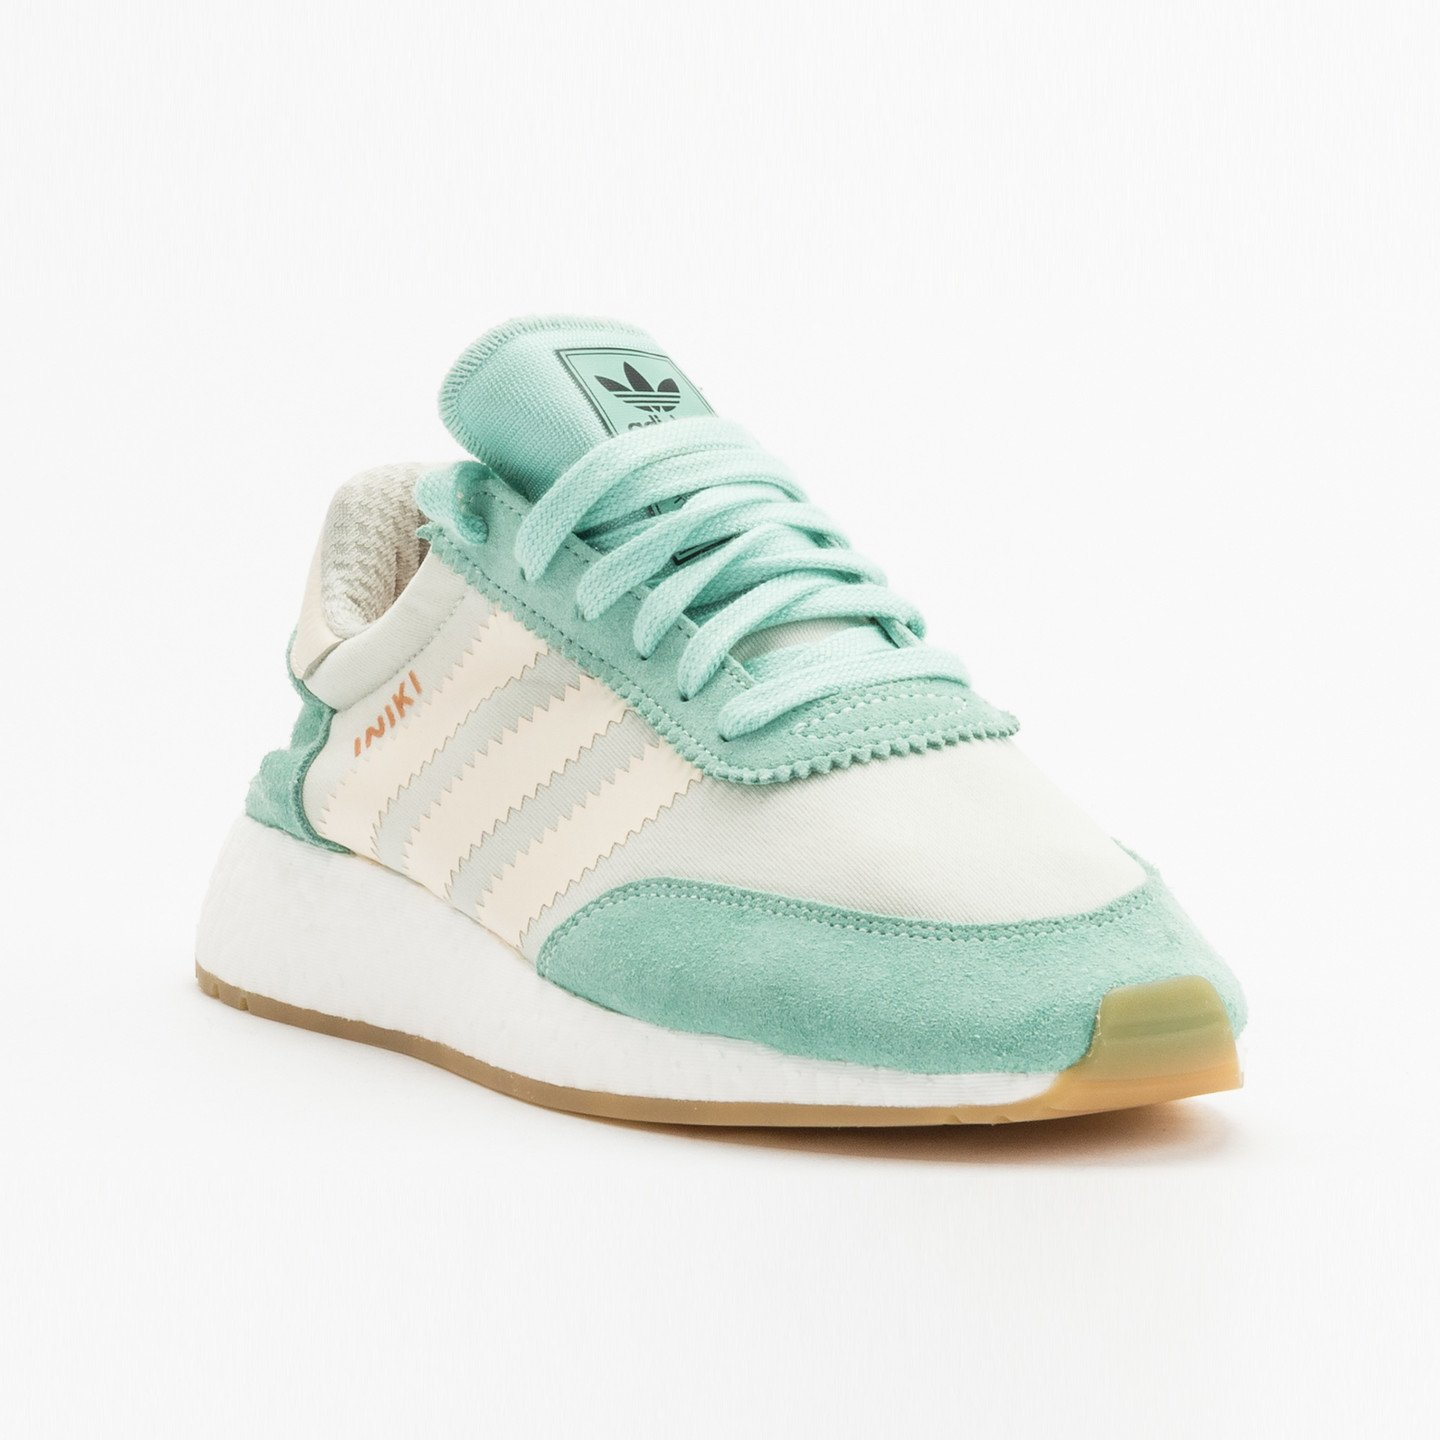 Adidas Iniki Runner W Easy Green / Cream White / Linen Green BA9994